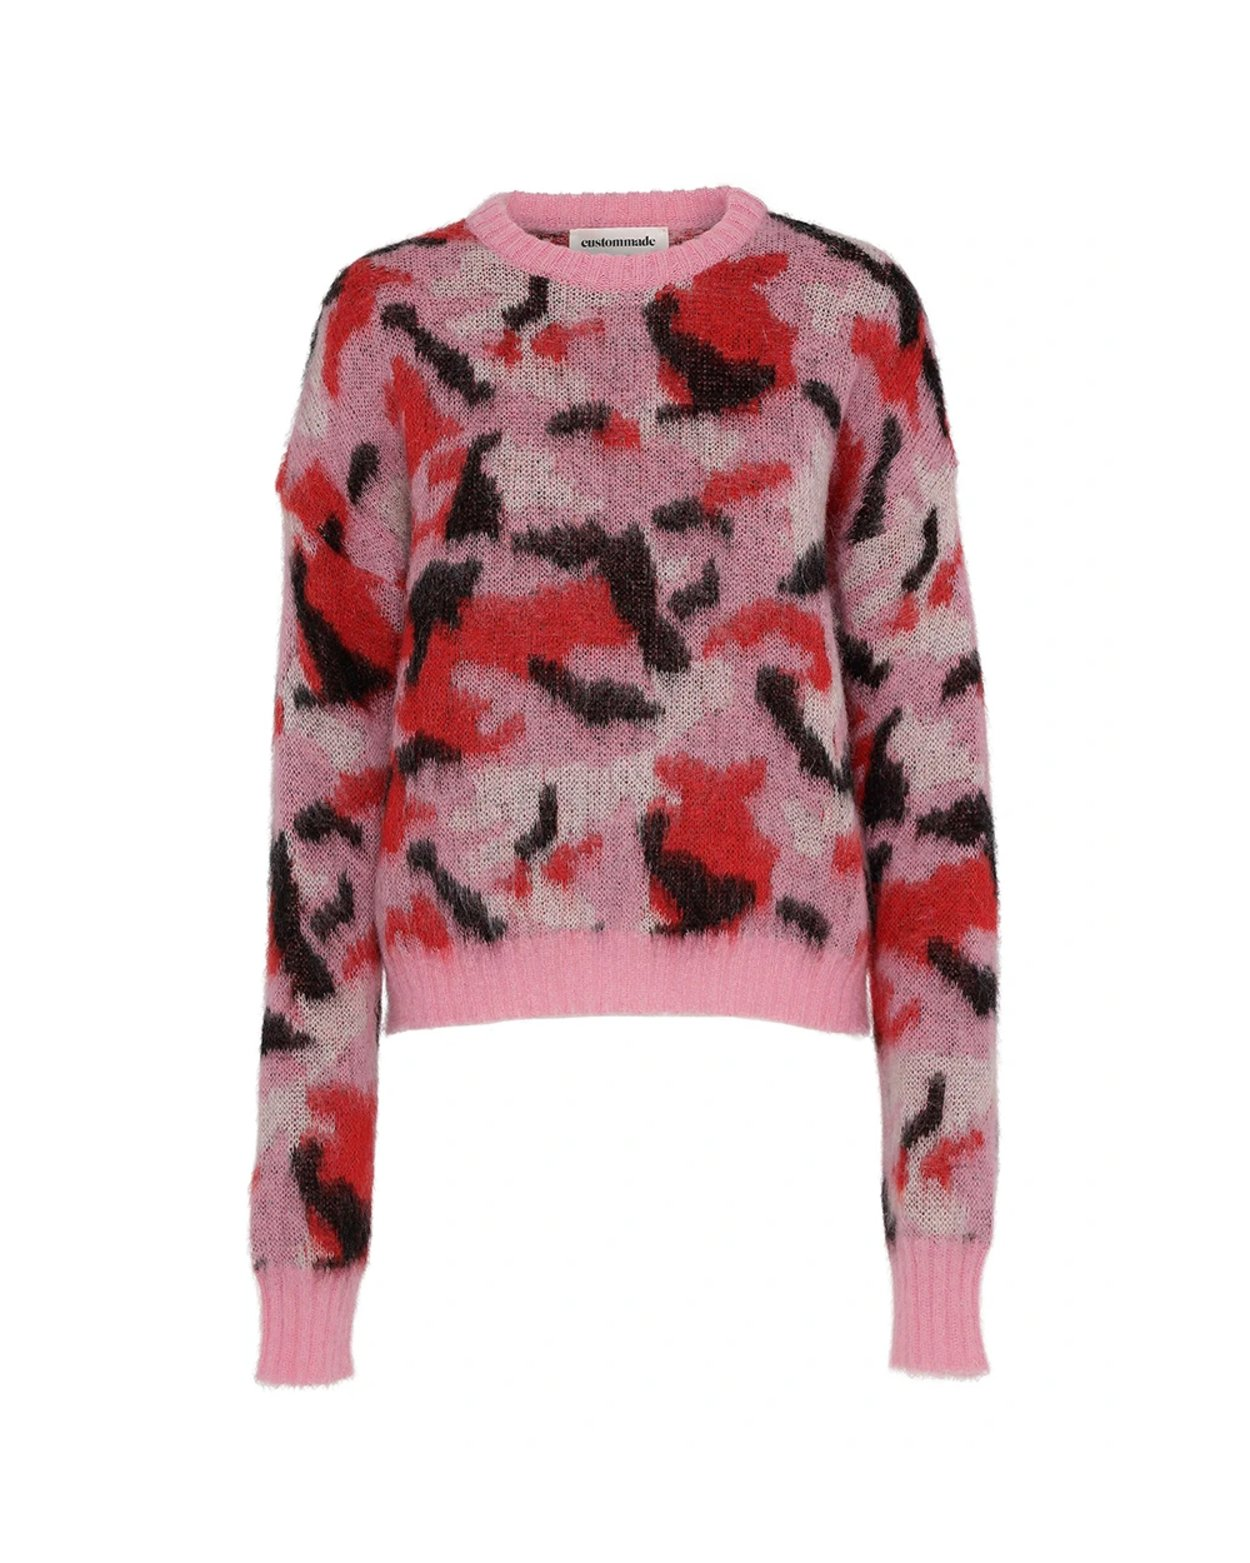 Gina Camouflage Pullover